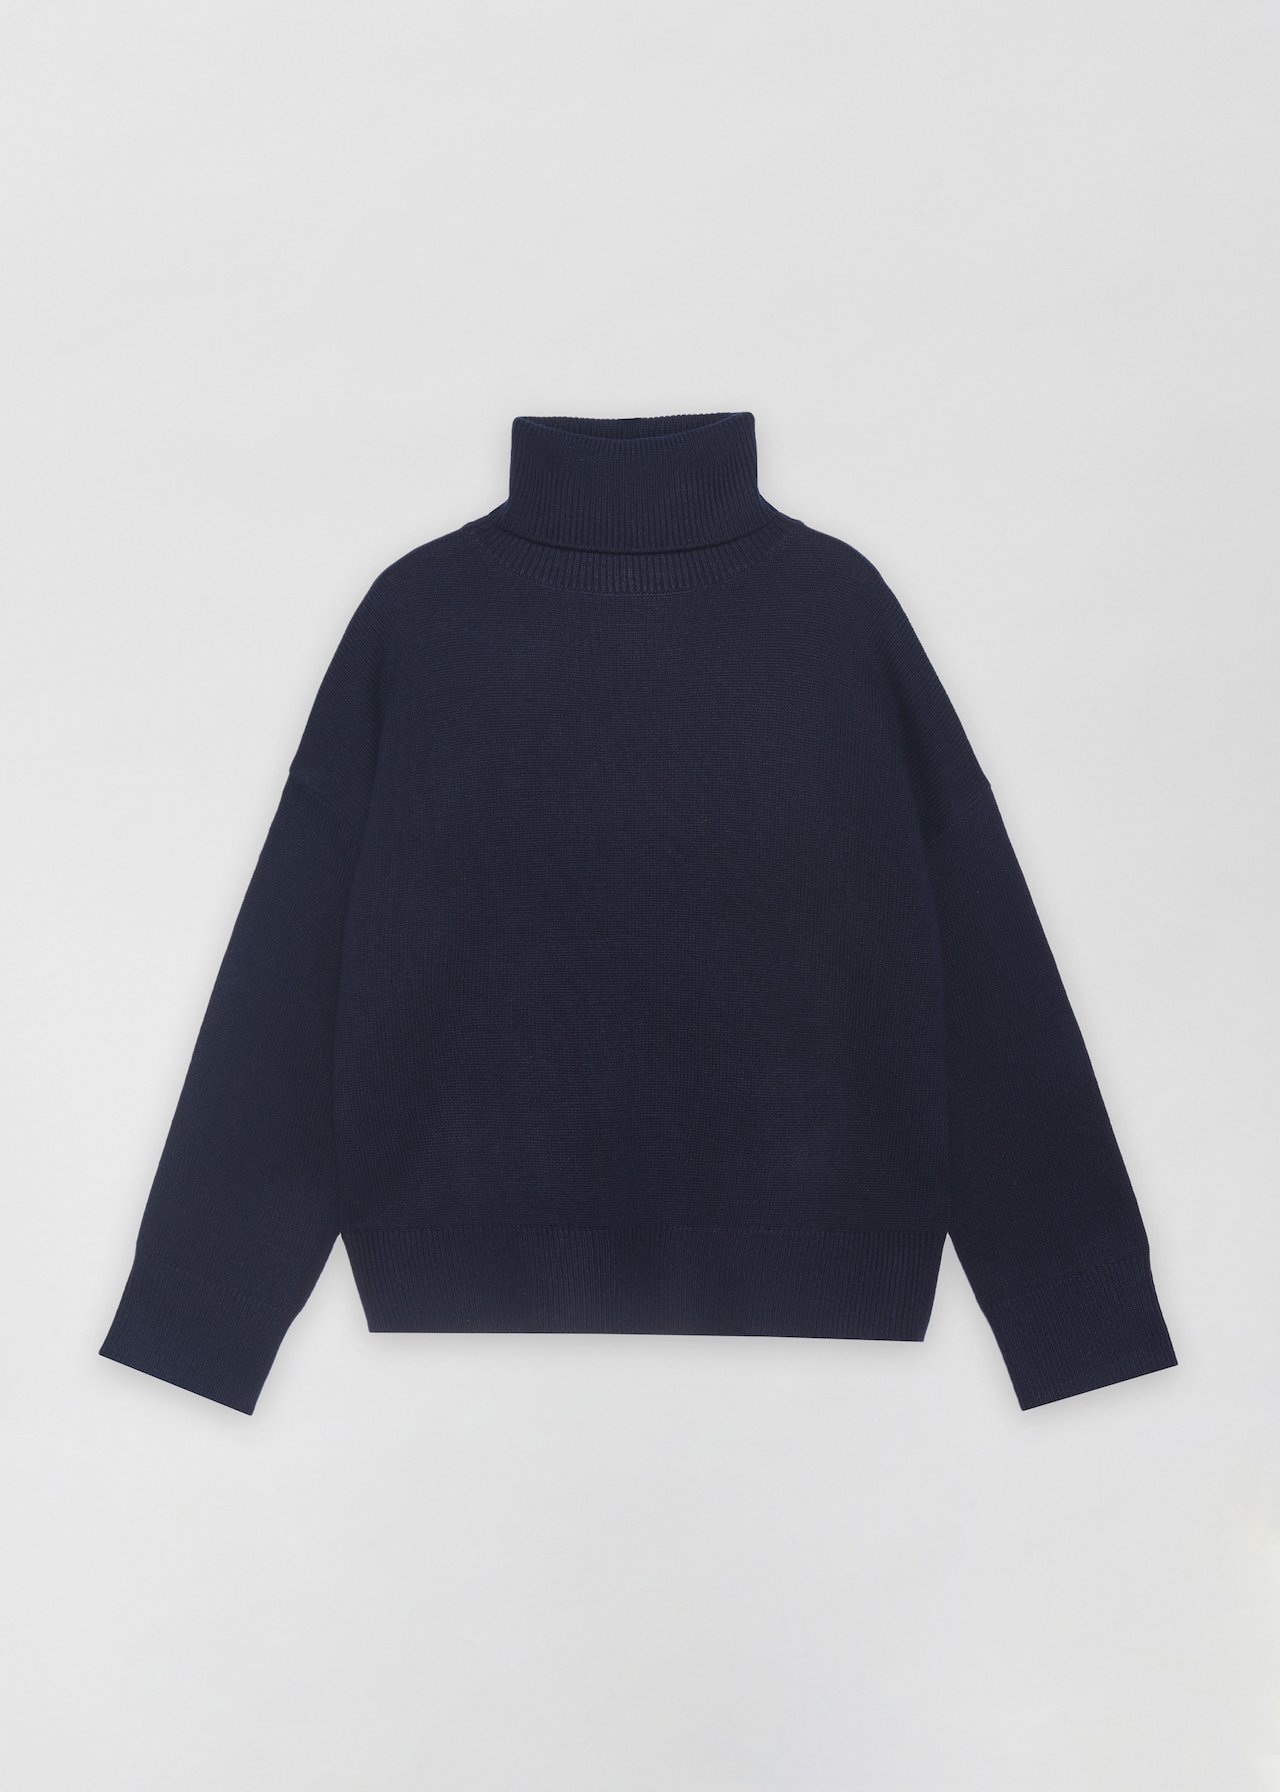 Boxy Turtleneck Sweater - Ivory in Navy by Co Collections